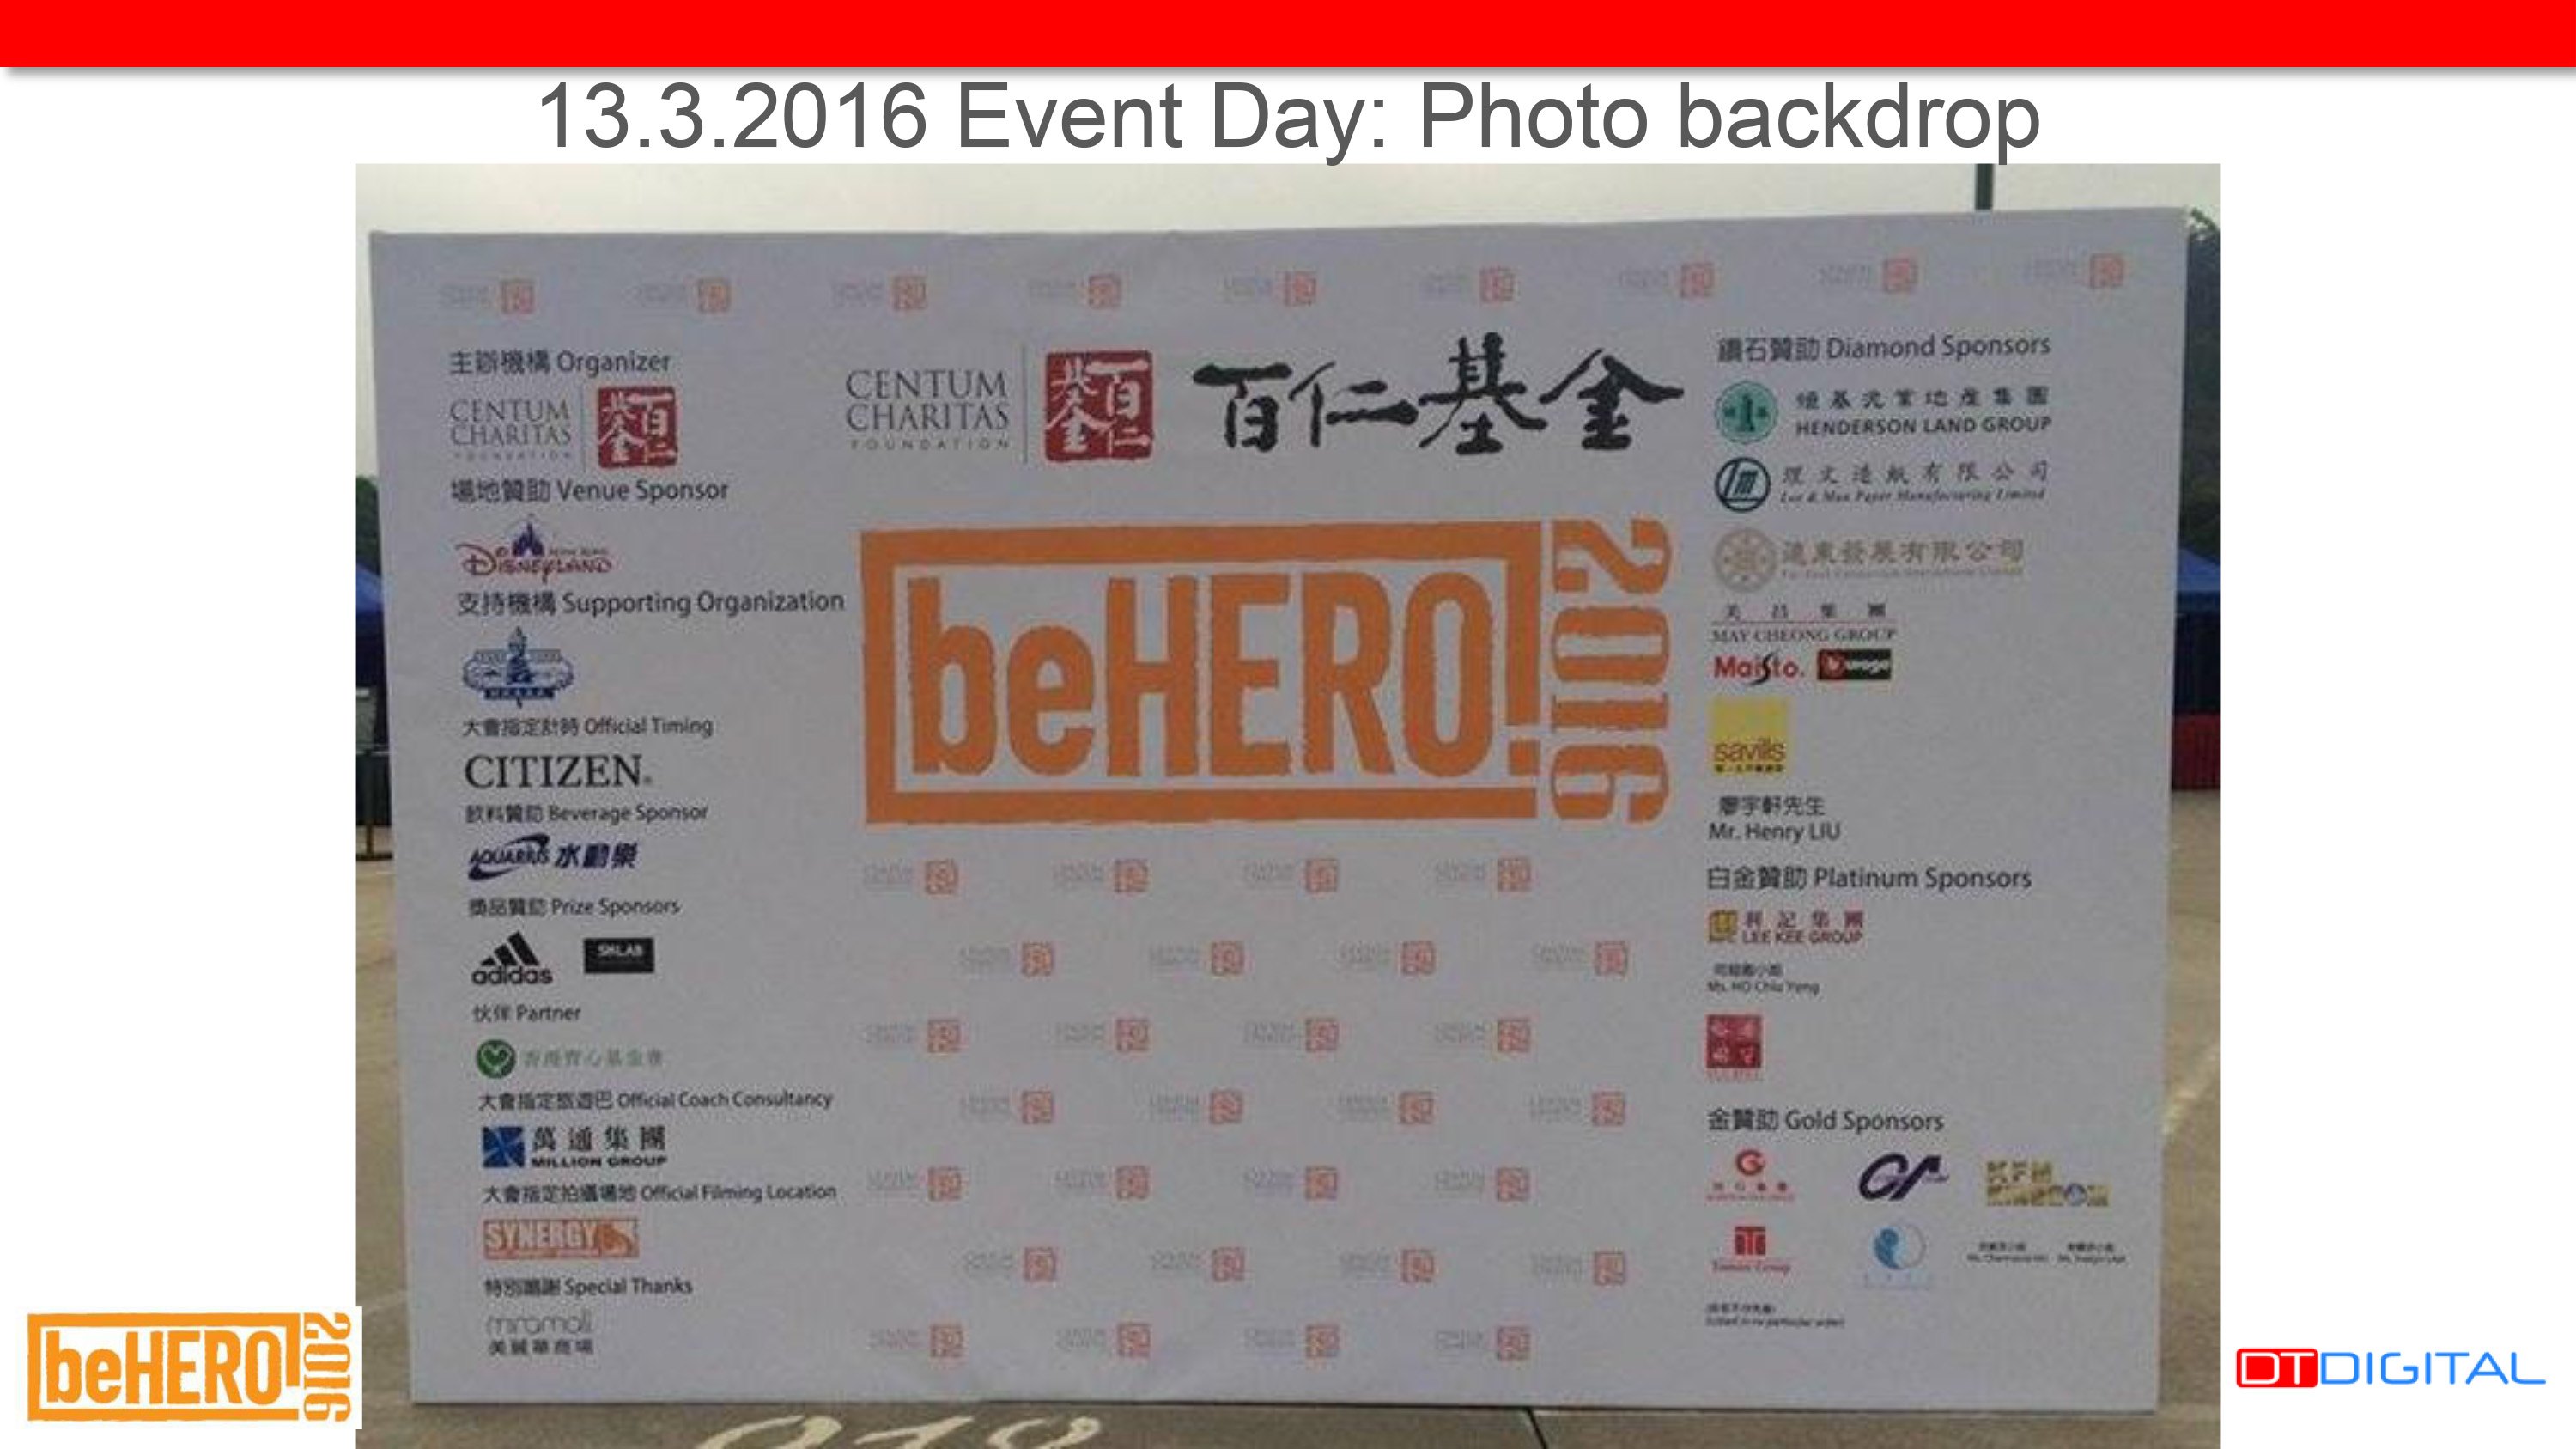 beHERO 2016 sponsor - Synergy (1)-4